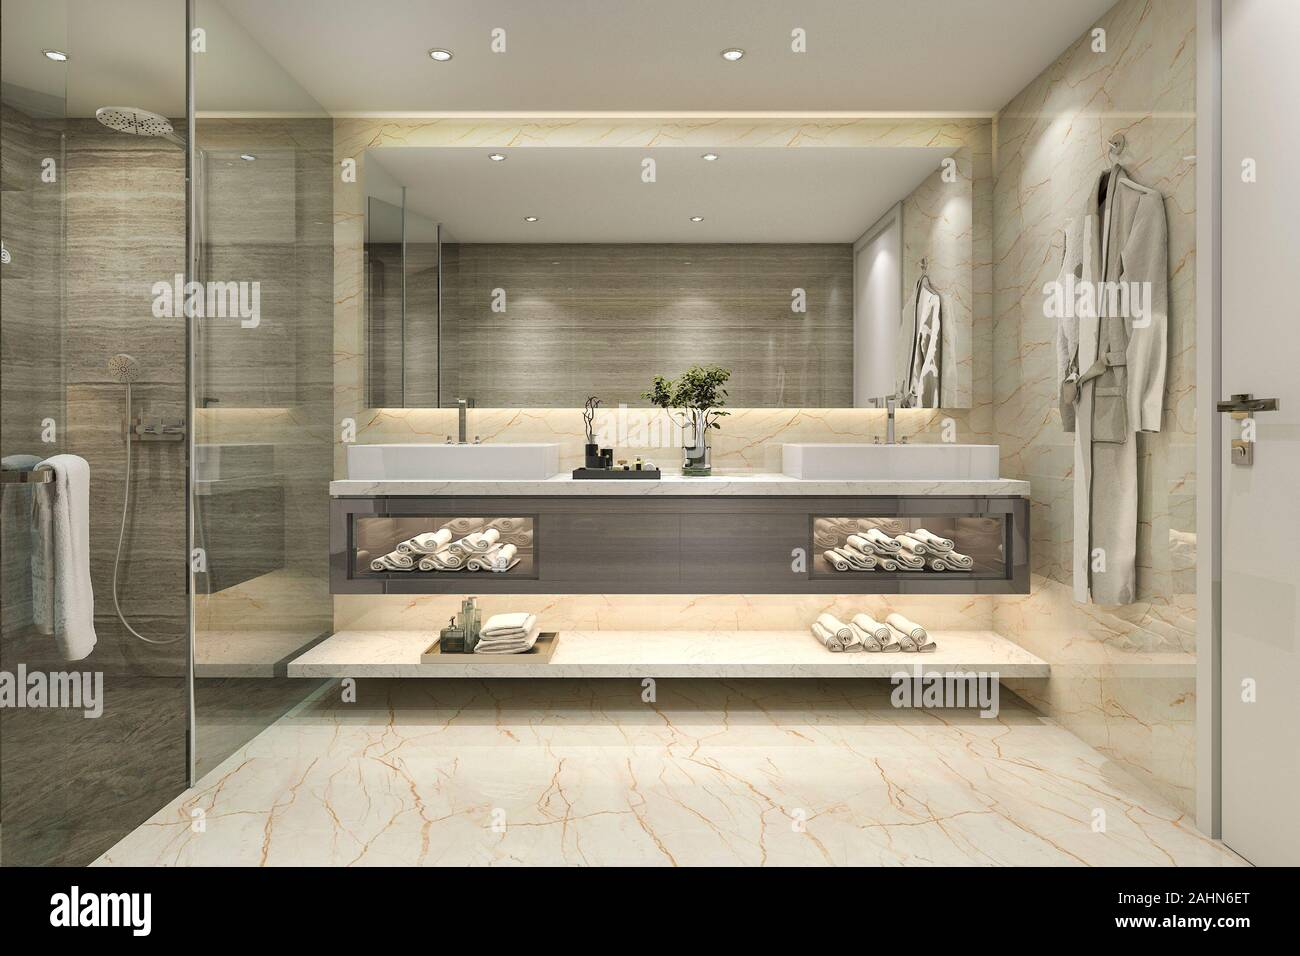 3d Rendering Modern Classic Bathroom With Luxury Tile Decor Stock